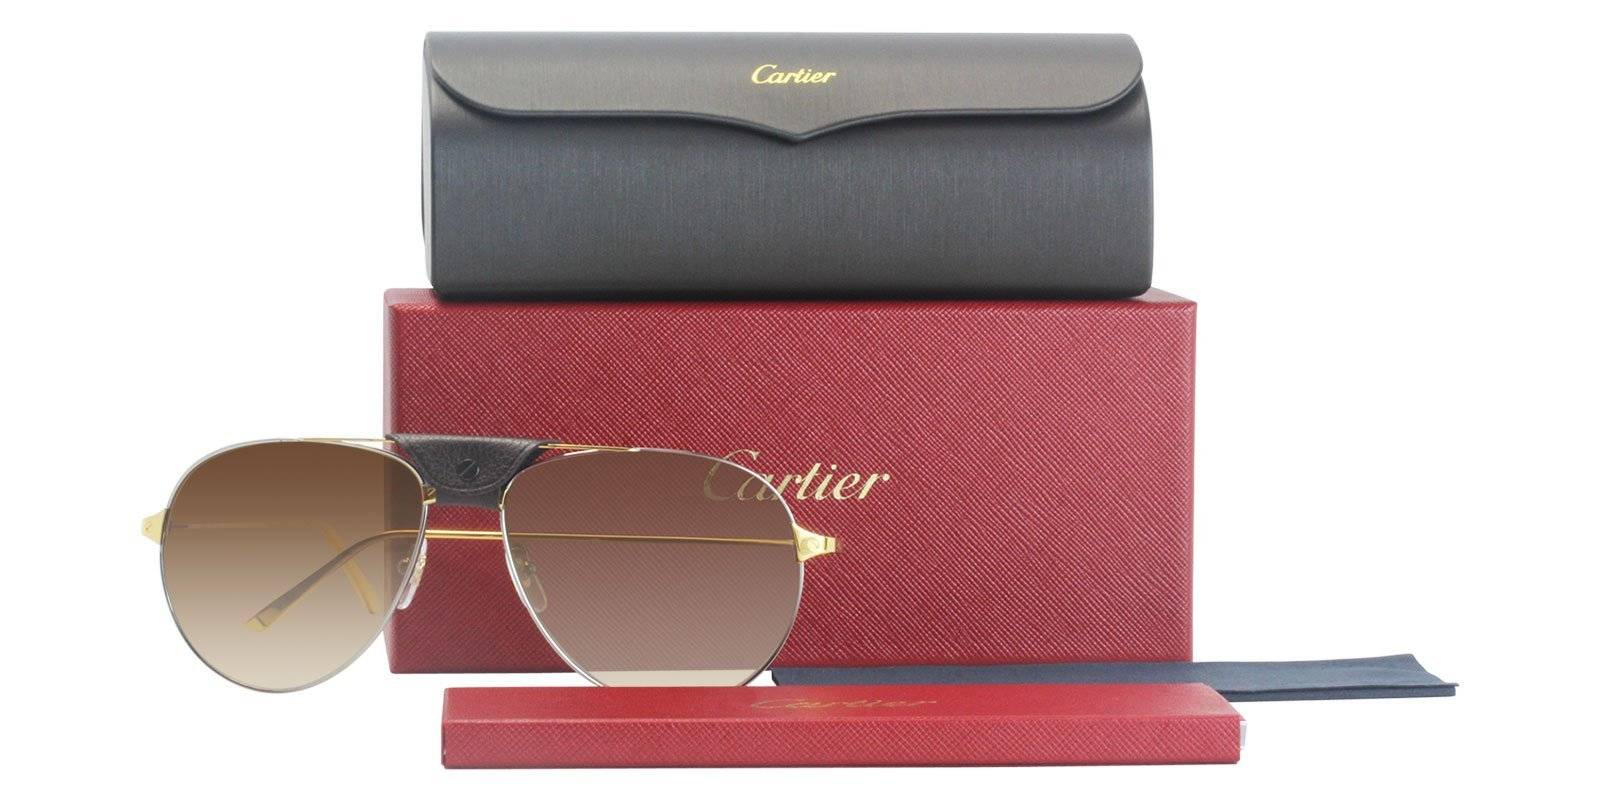 d727799712 Top 10 Cartier Sunglasses Gift Ideas for him and her– Designer Eyes